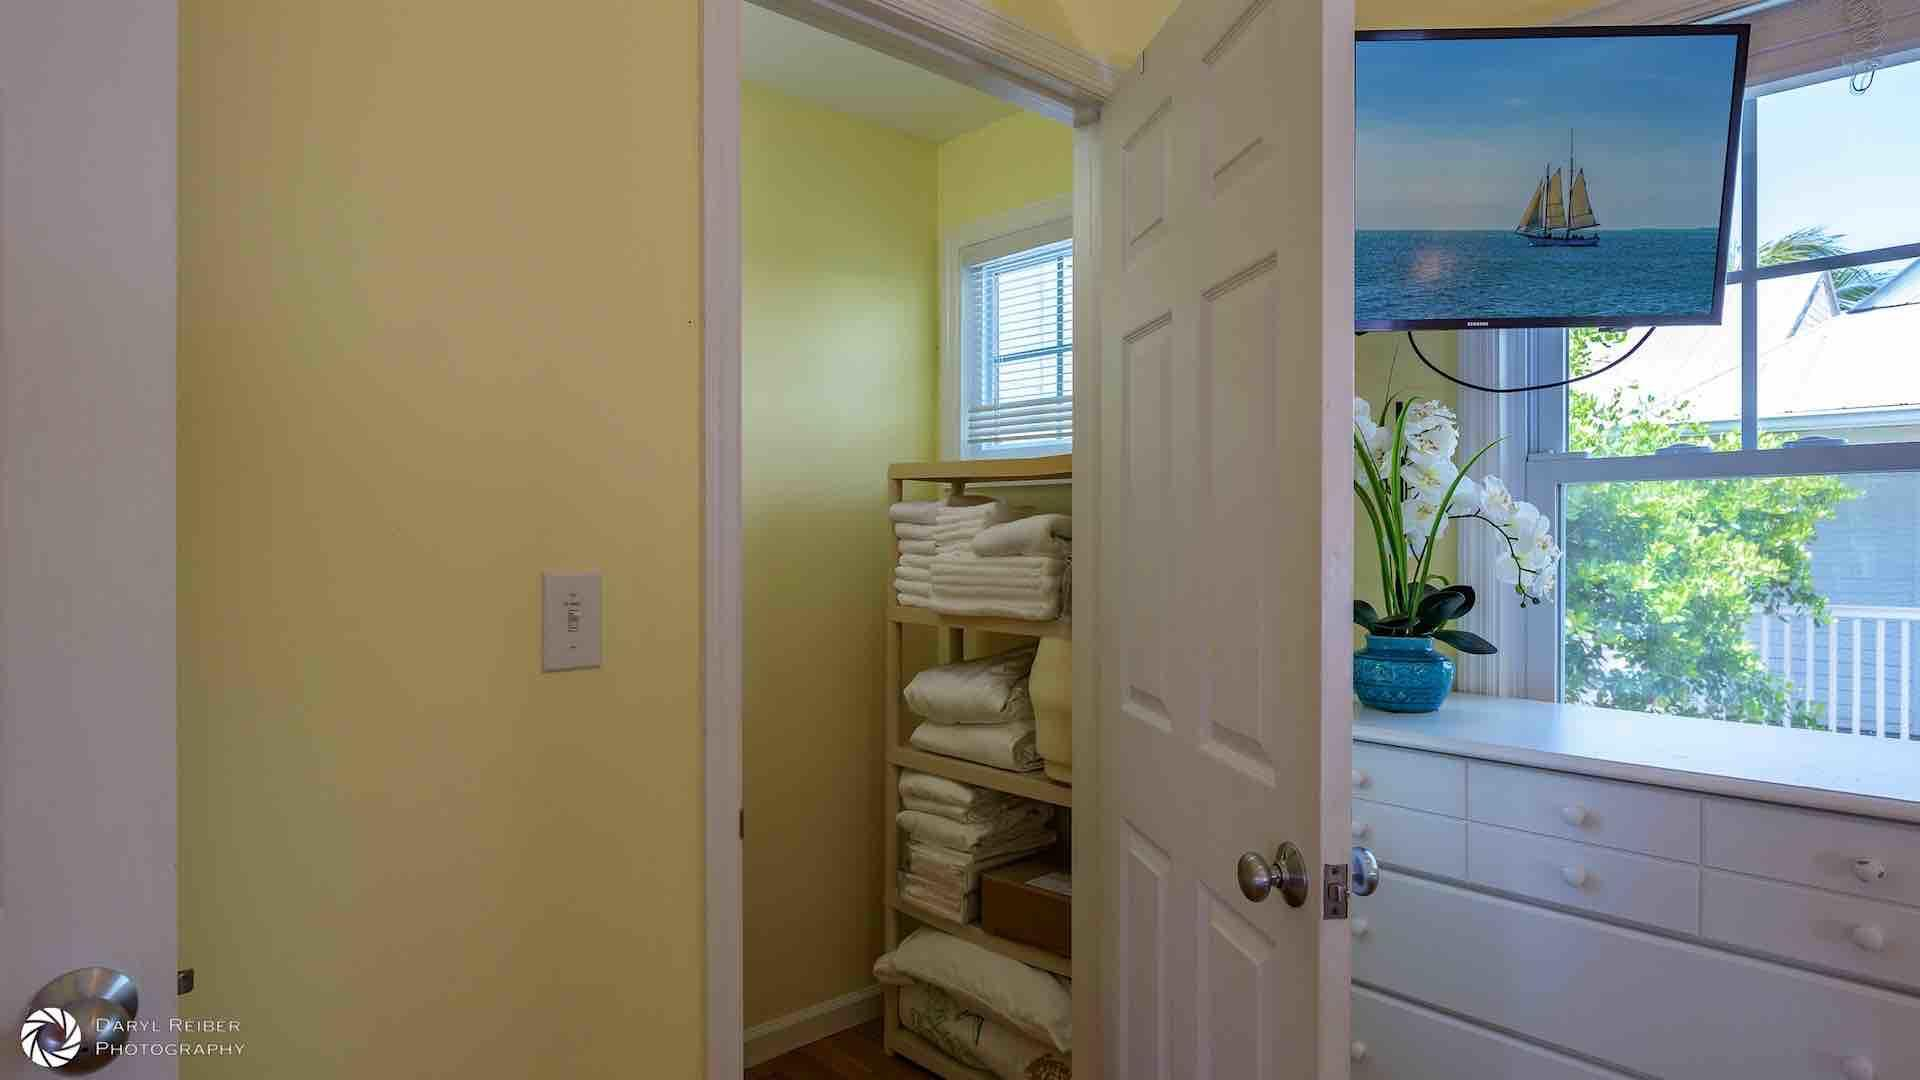 The second bedroom also has a large linen closet...